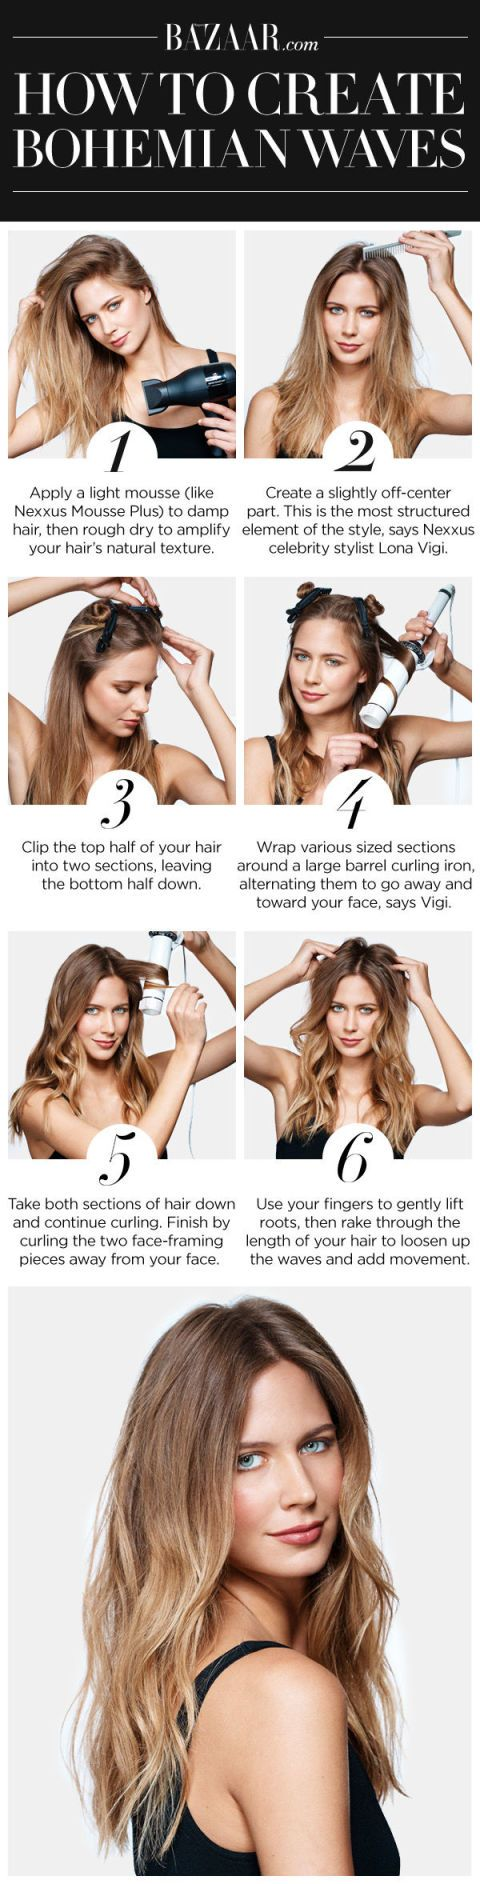 How to Get Bohemian Waves - Messy Waves Hair Tutorial